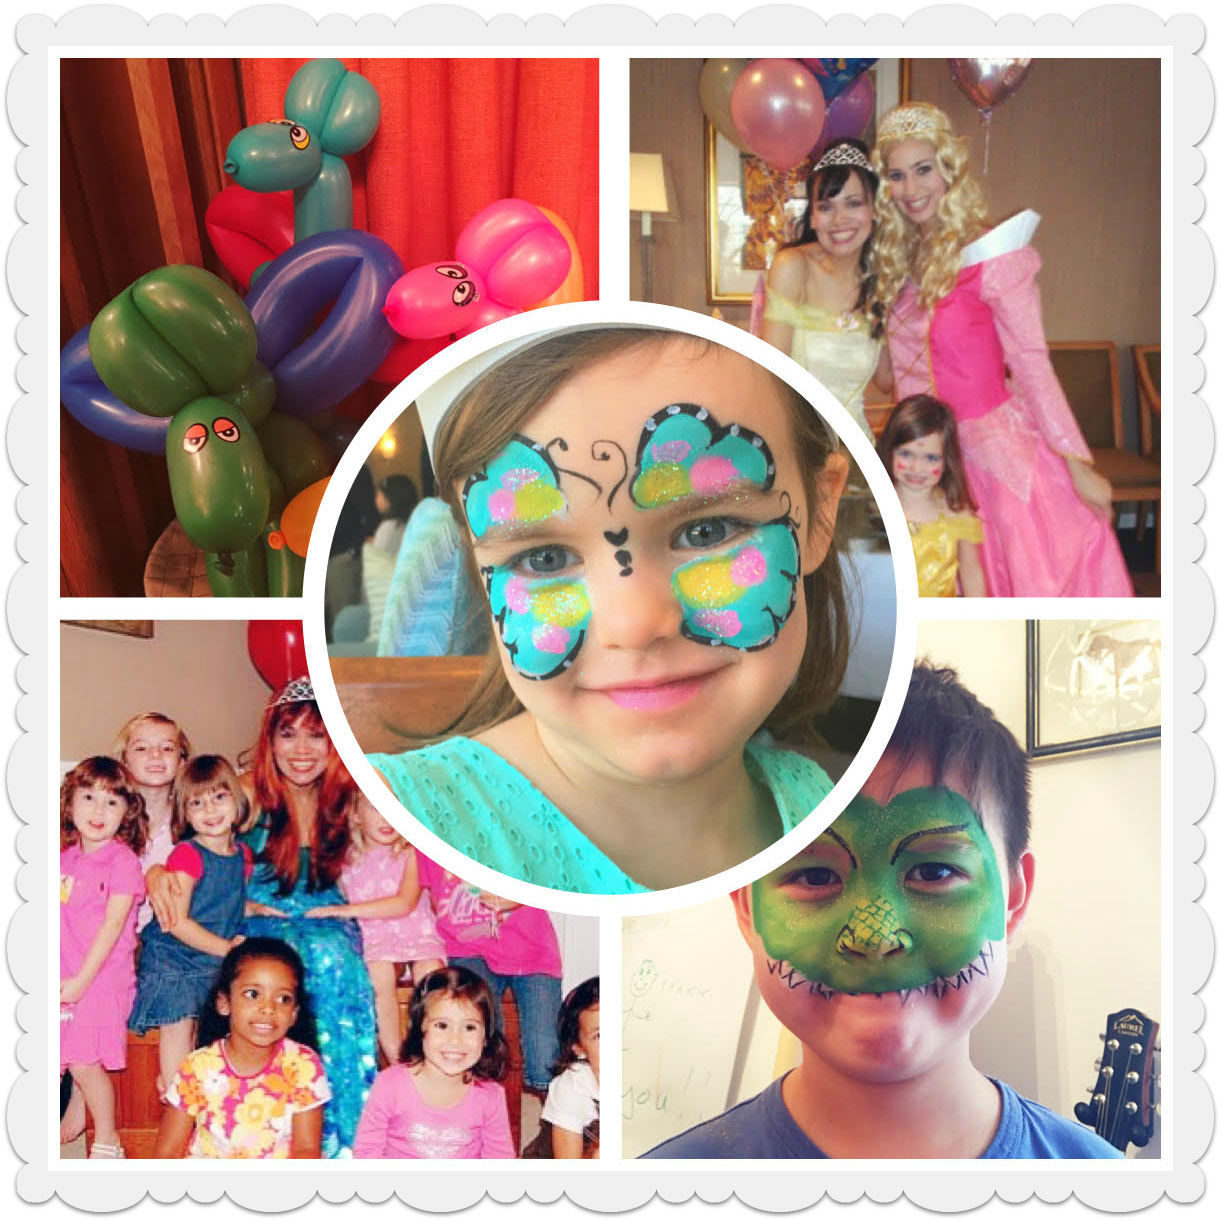 Anna Elsa Ariel Mermaid Sleeping Beauty Cinderella Pretty Face Painting balloons birthday party NYC balloonist face painters corporate events NYC entertainers kids children's entertainer princess Belle Frozen